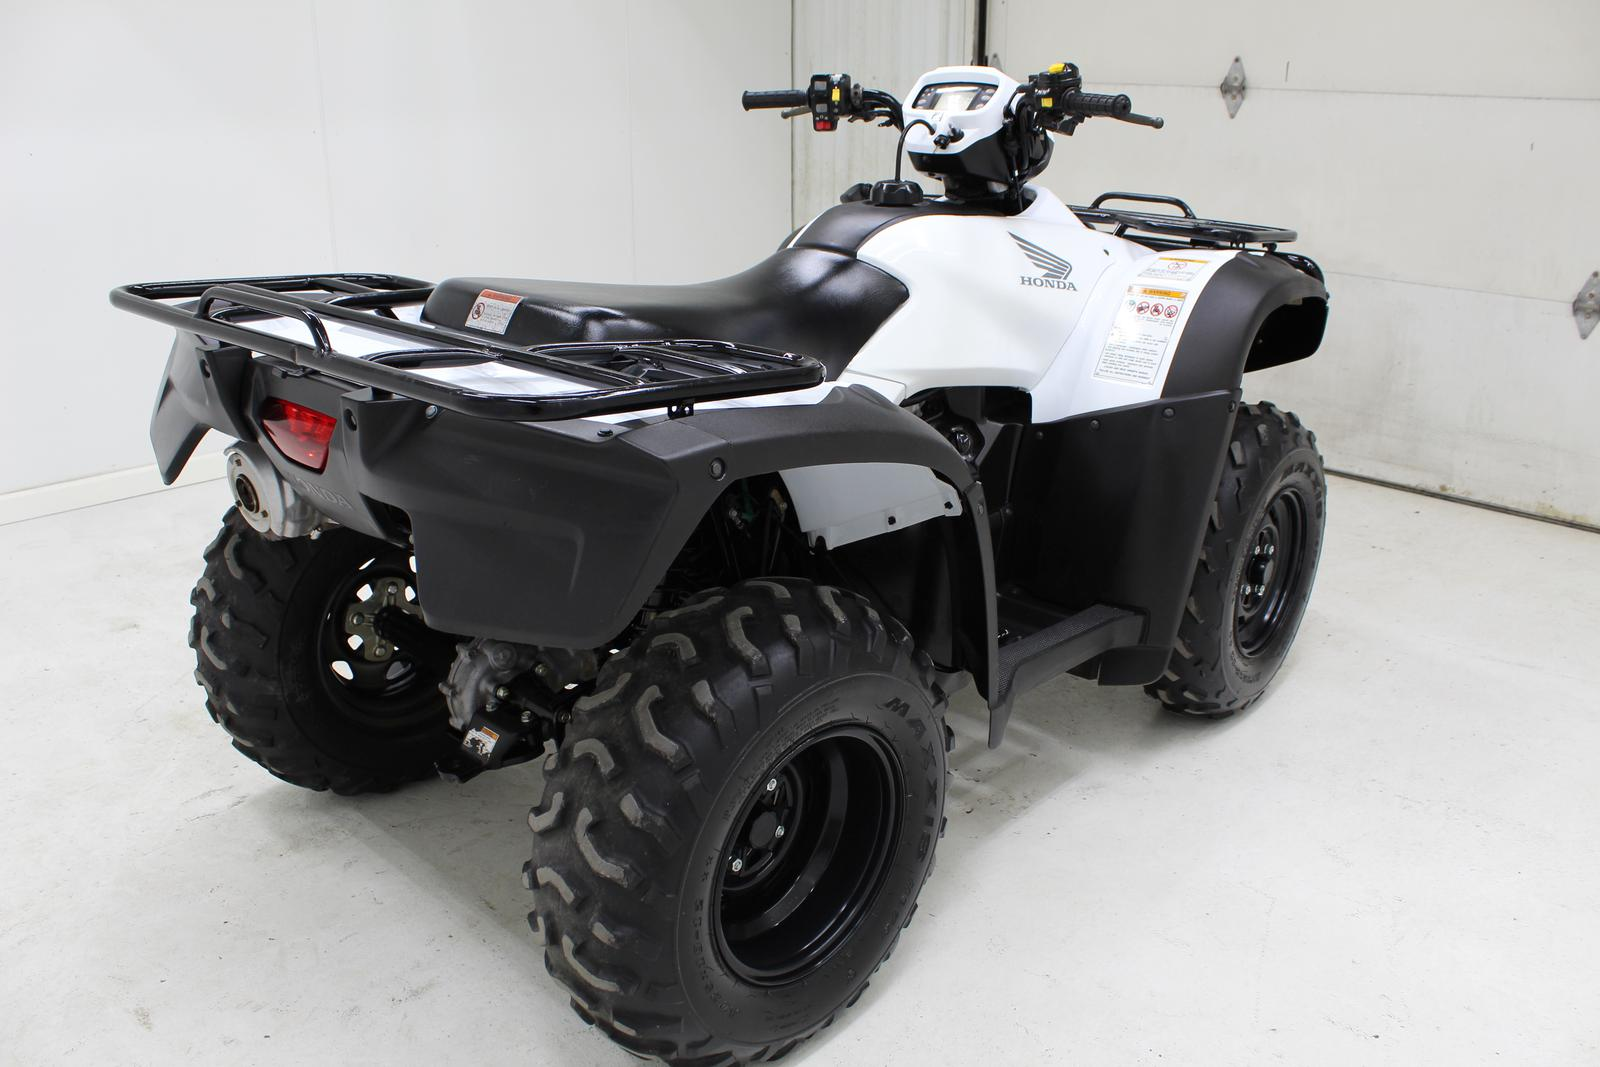 2014 Honda Rubicon 500 4x4 Auto For Sale In Paducah Ky Chase Fuel Filter Img 7893